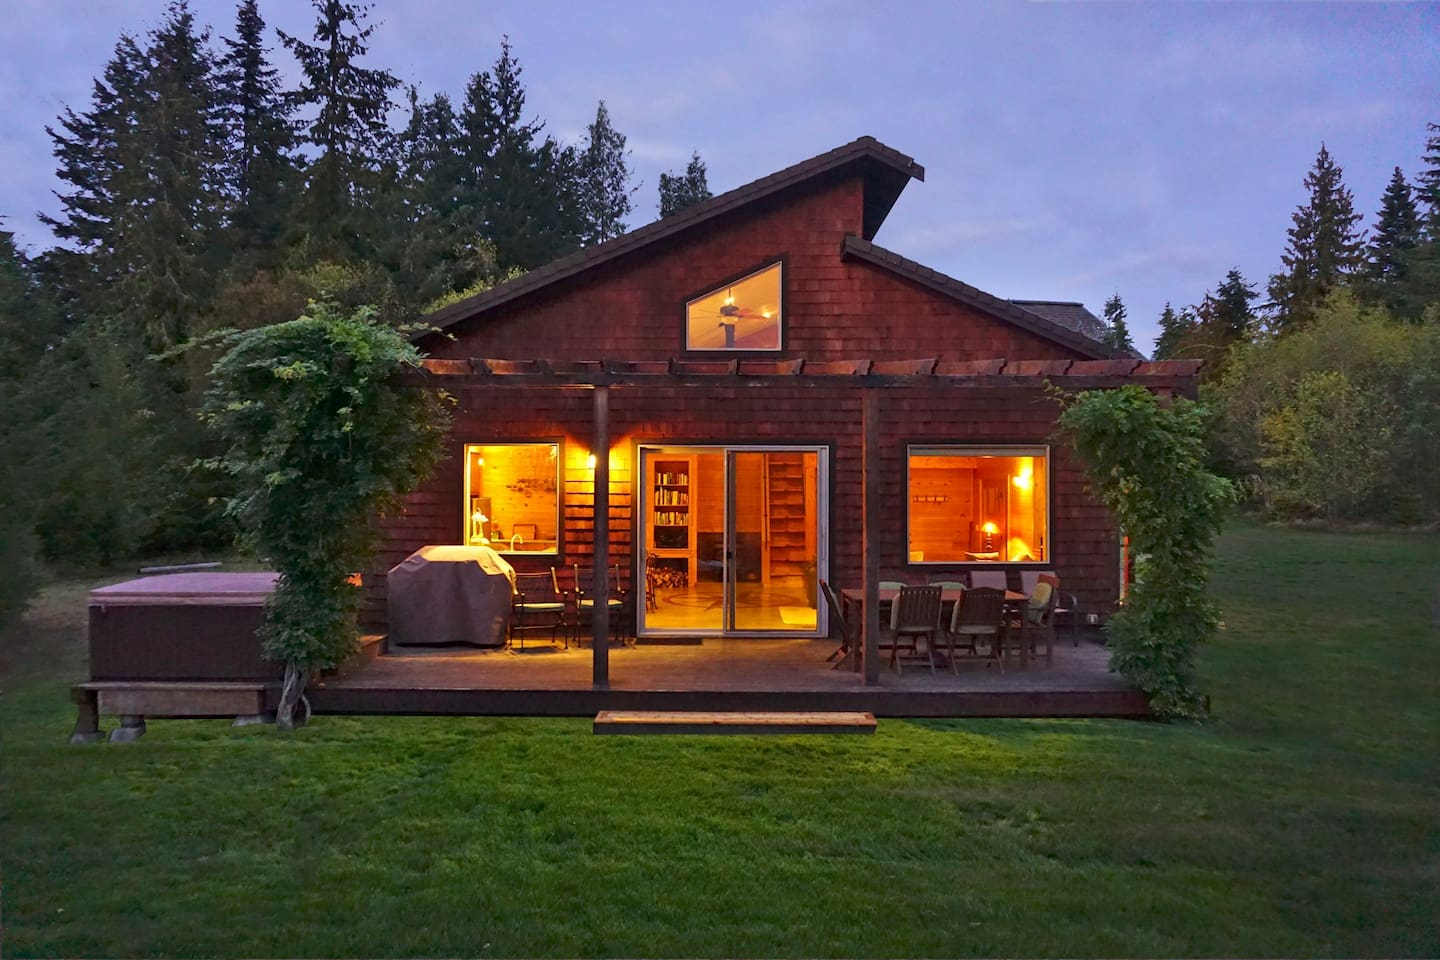 THE COMPASS ROSE House with Hot Tub & Olympic Mountain Views